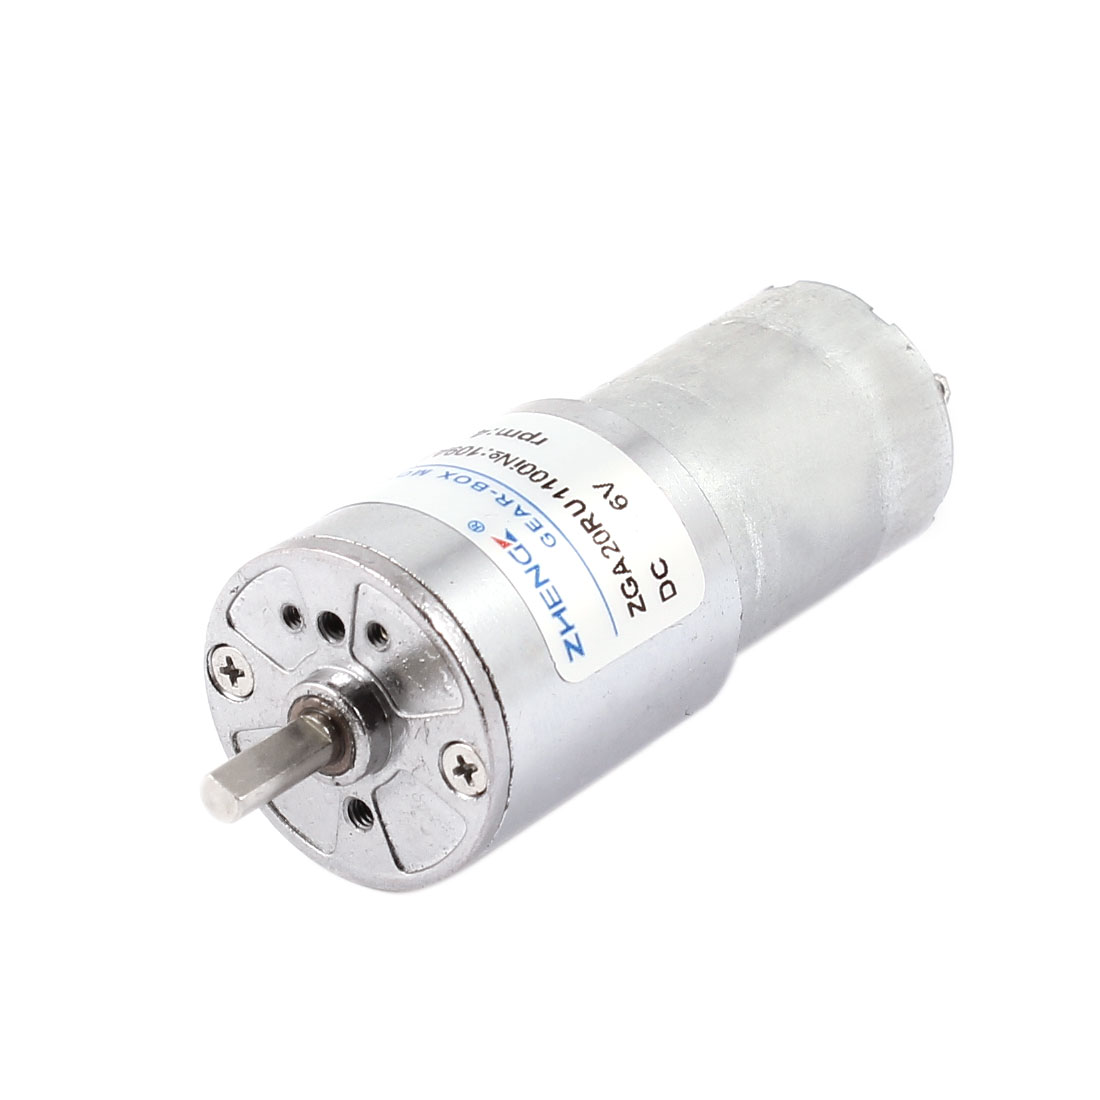 DC 6V 4600RPM 3mm Shaft Dia Cylindrical Metal Electric Geared Box Motor